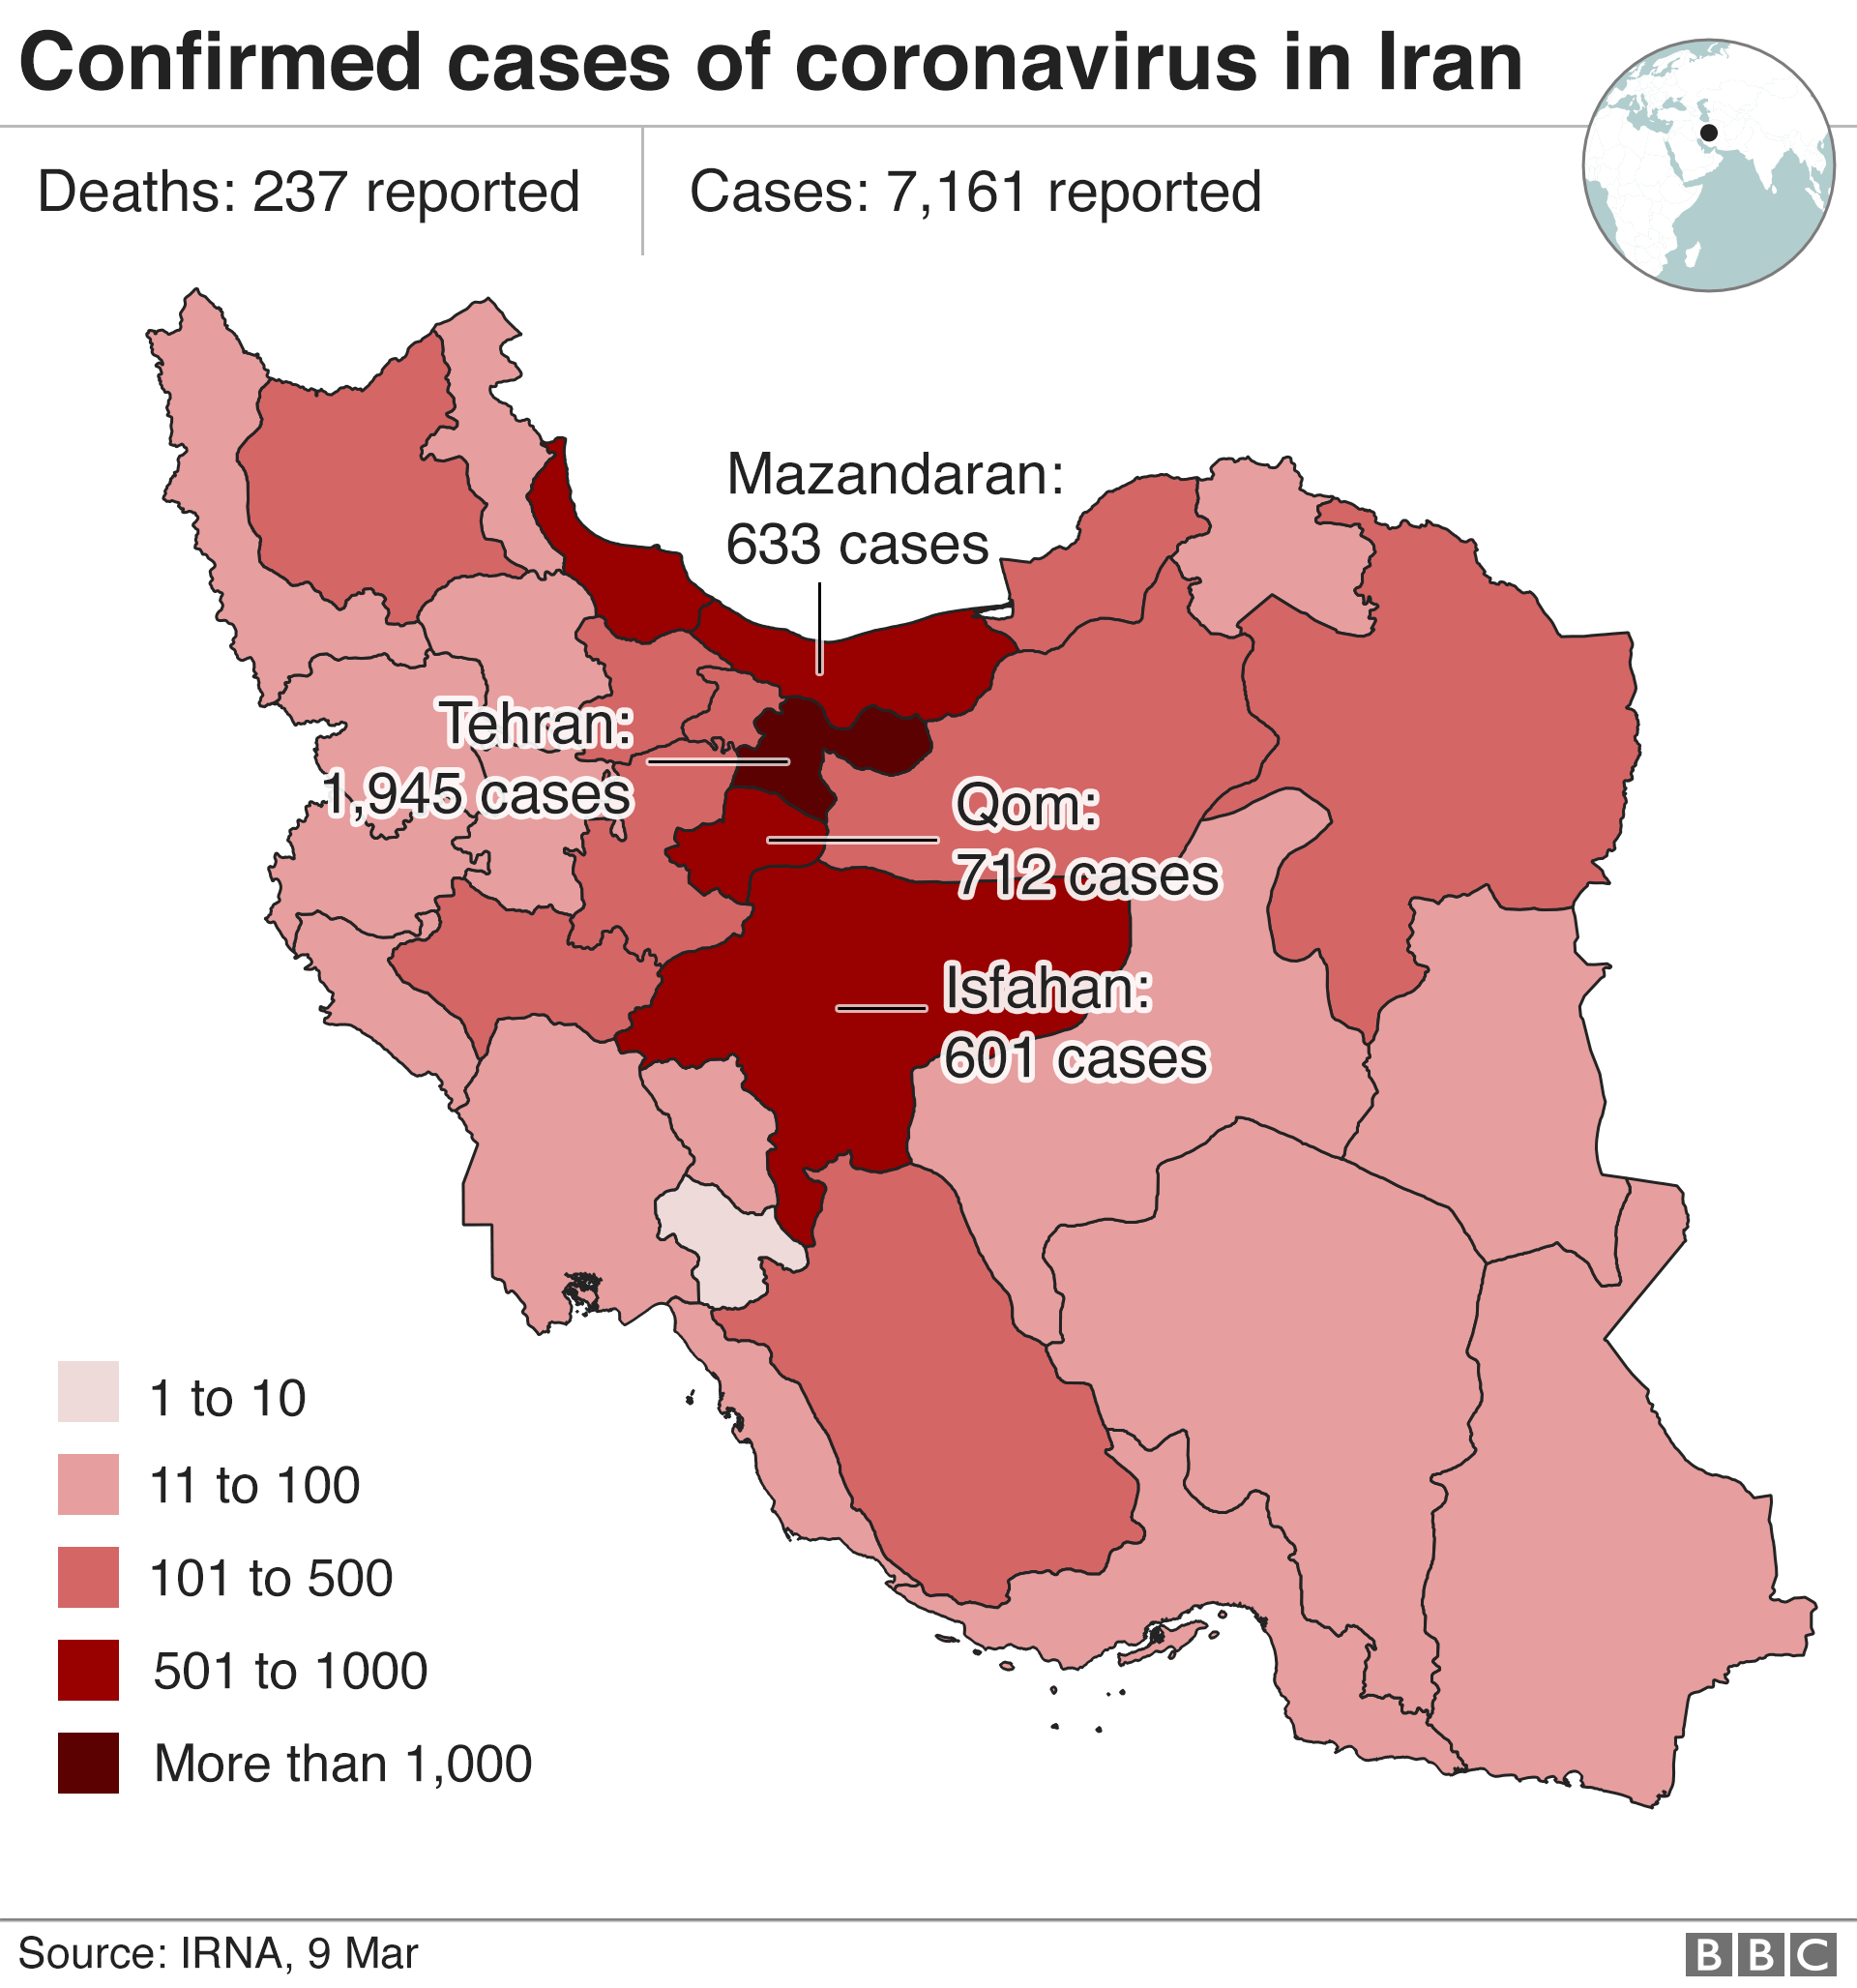 Map showing cases in Iran as of 9 March, with most in Tehran and the region of Qom